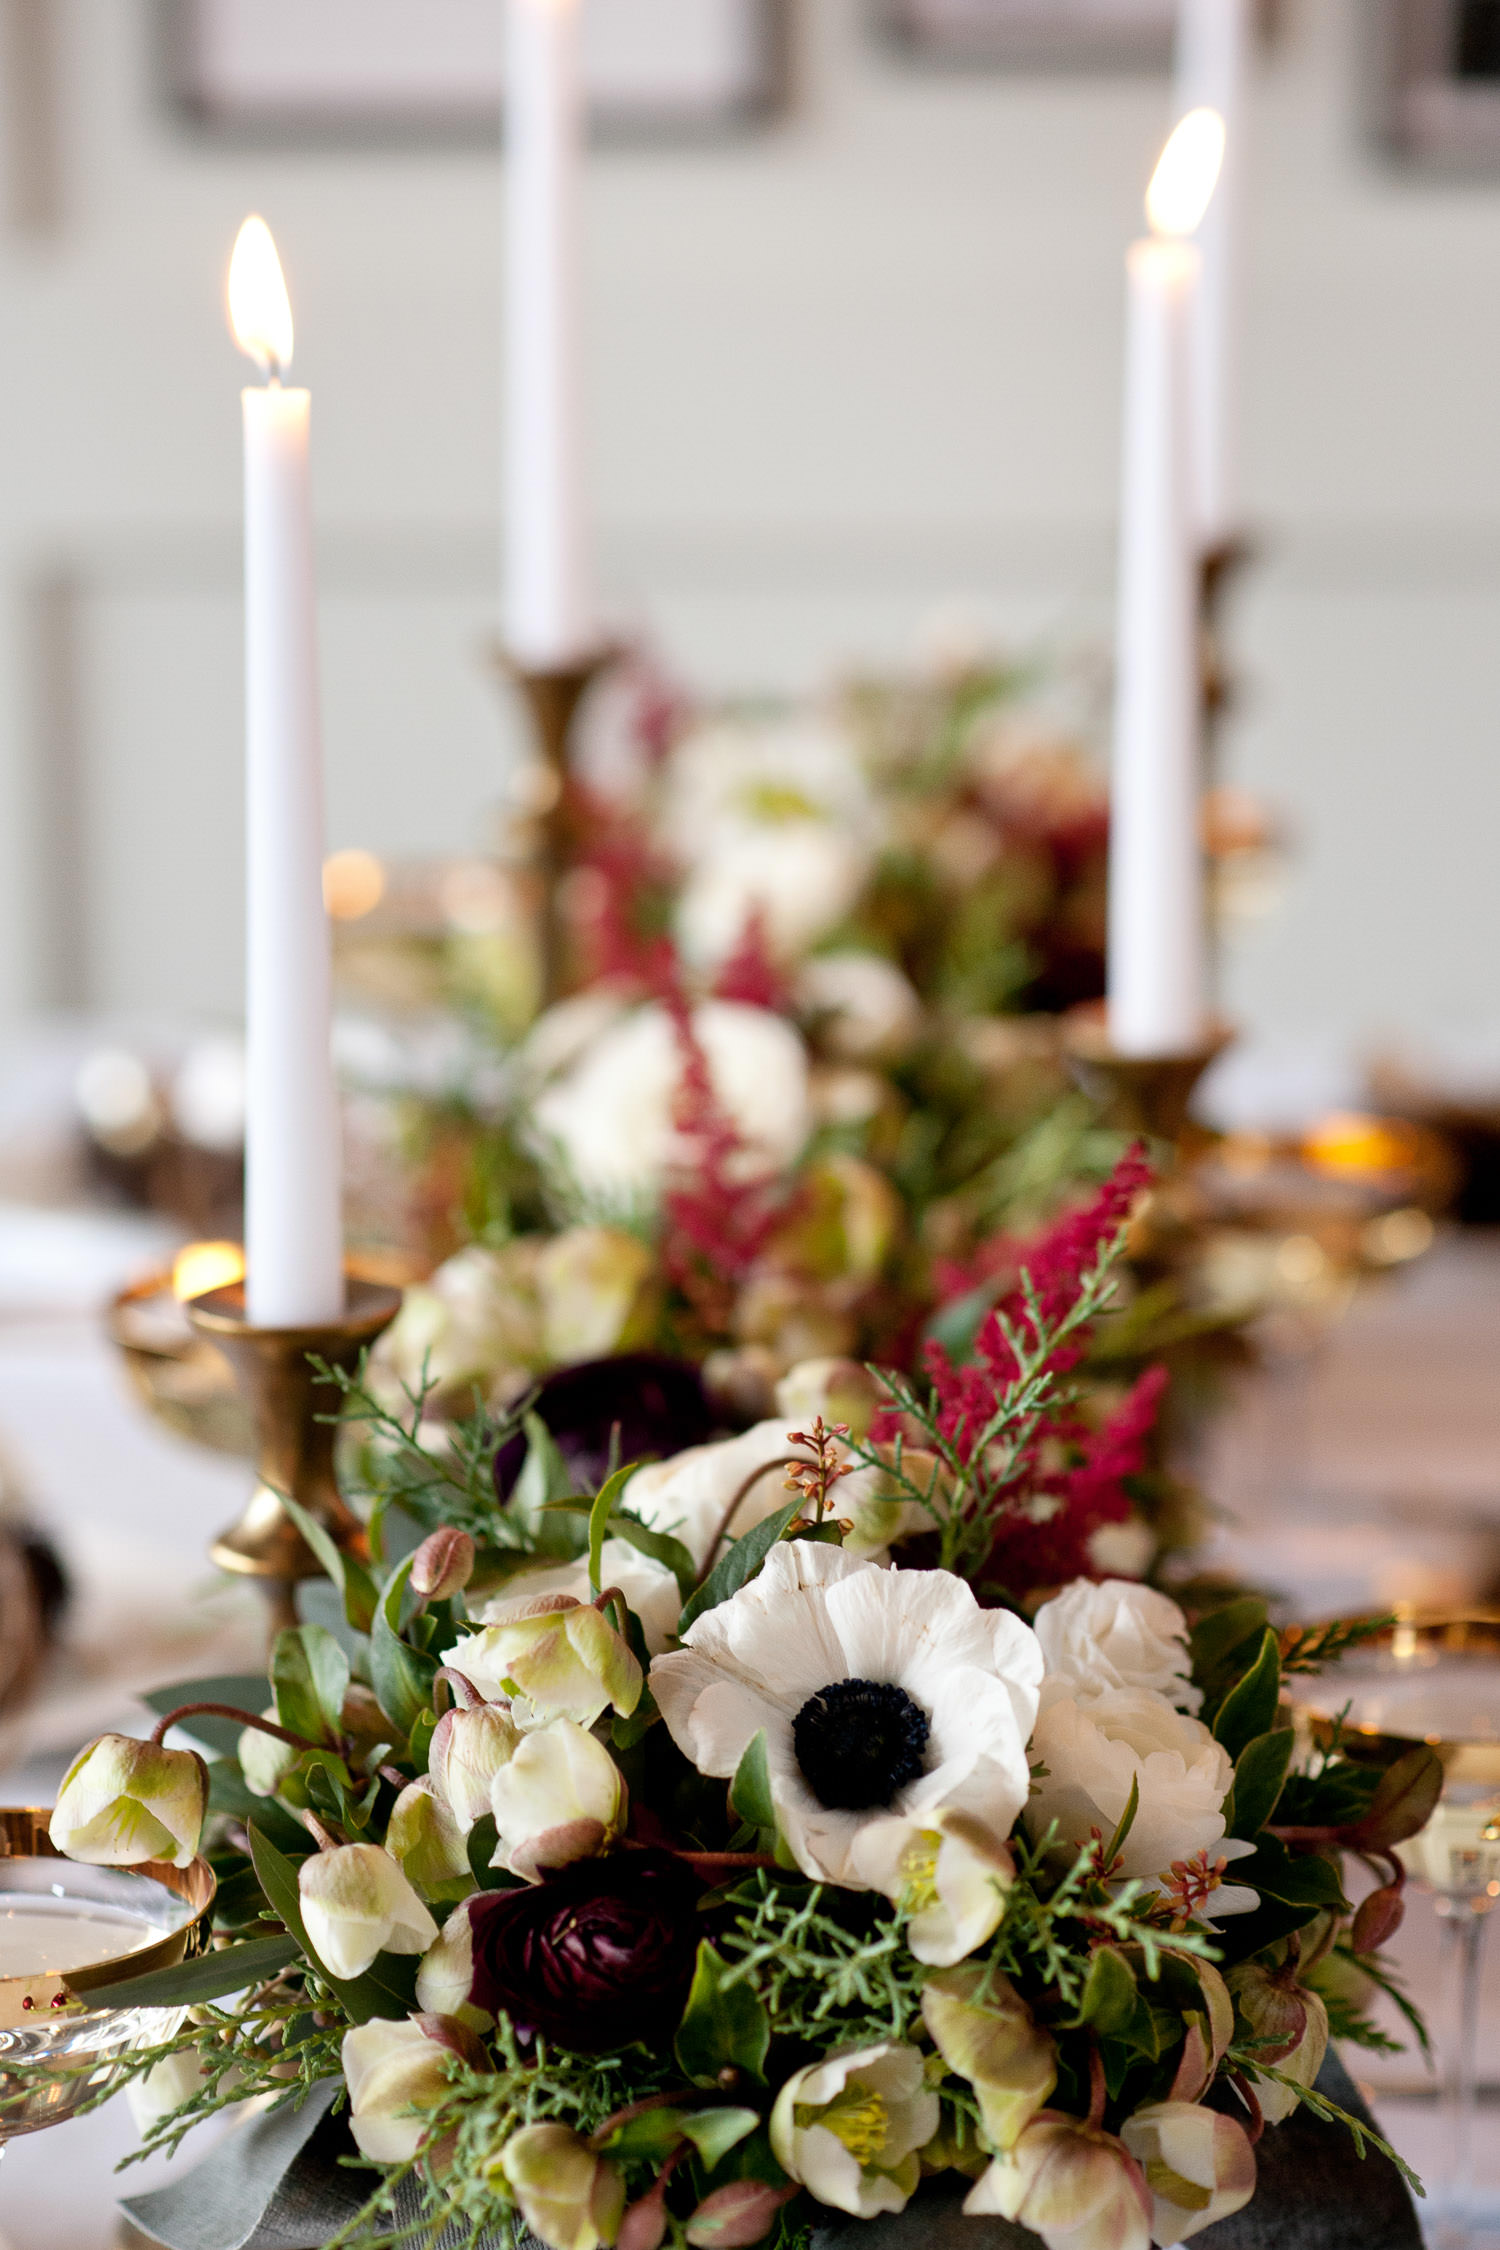 Panda anemones on a holiday table captured by Tara Whittaker Photography